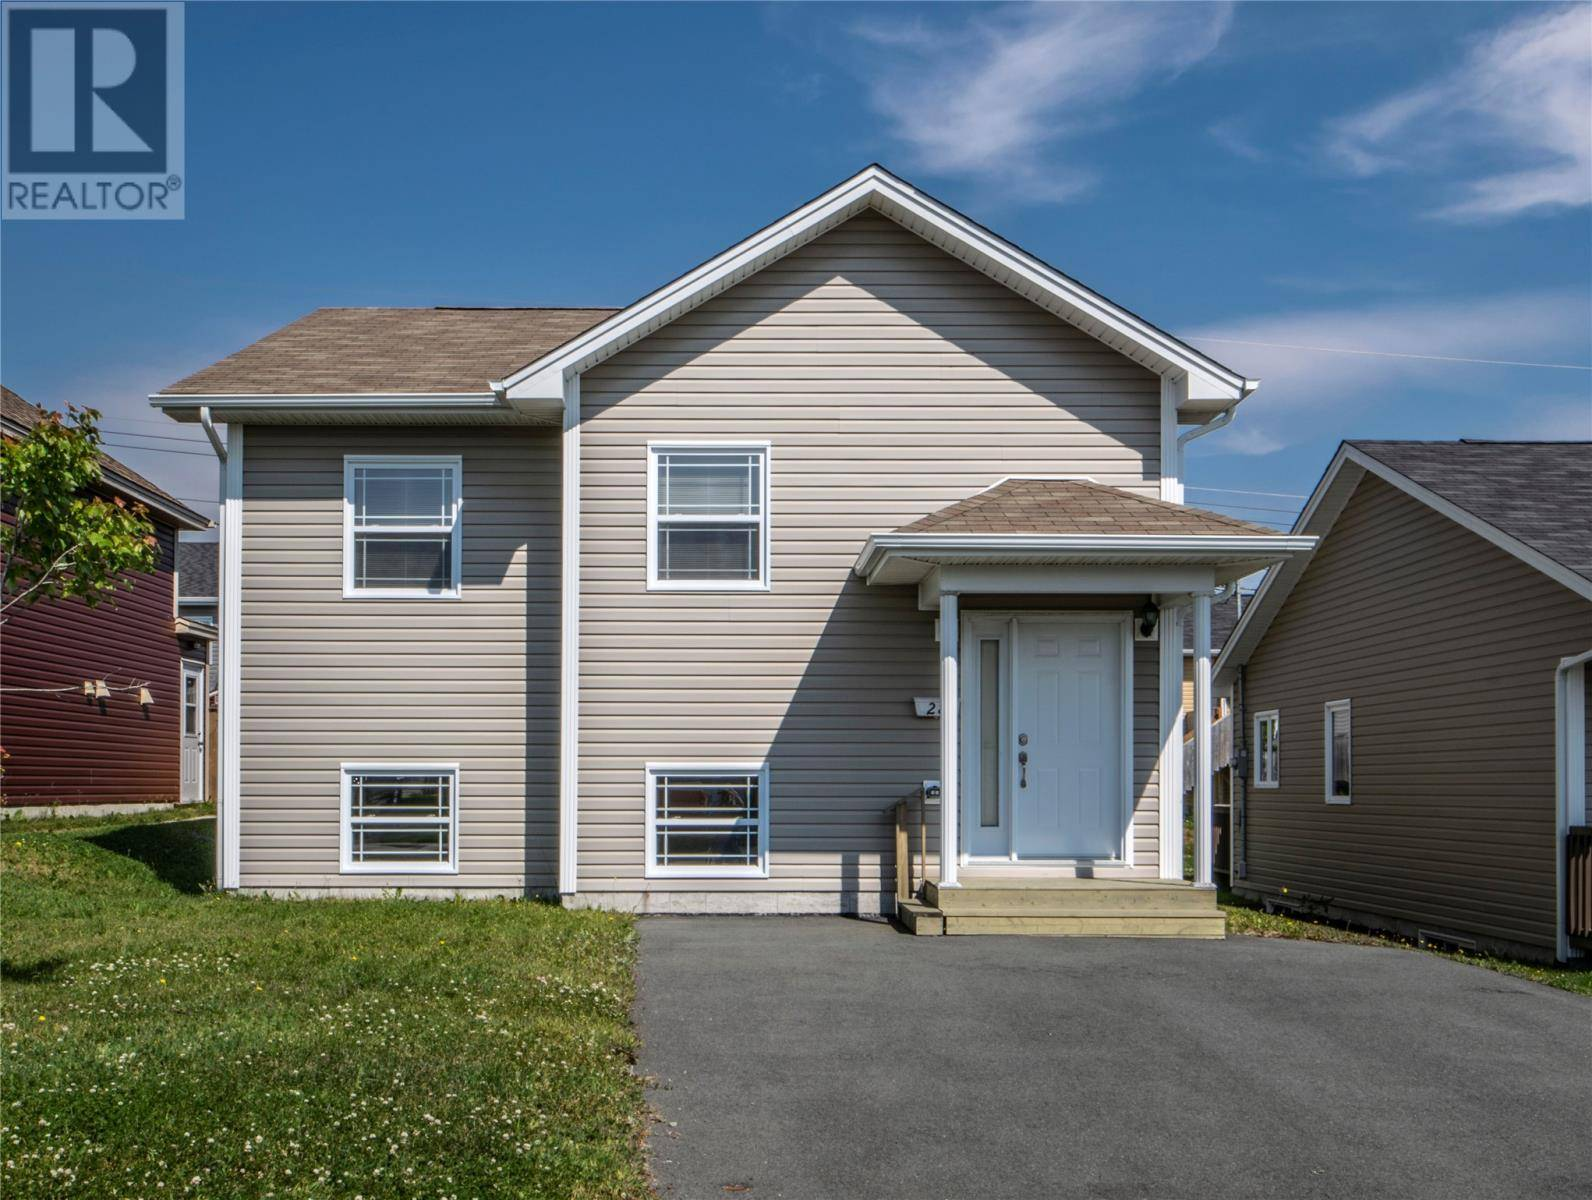 House for sale at 28 Pollux Dr Mount Pearl Newfoundland - MLS: 1200829